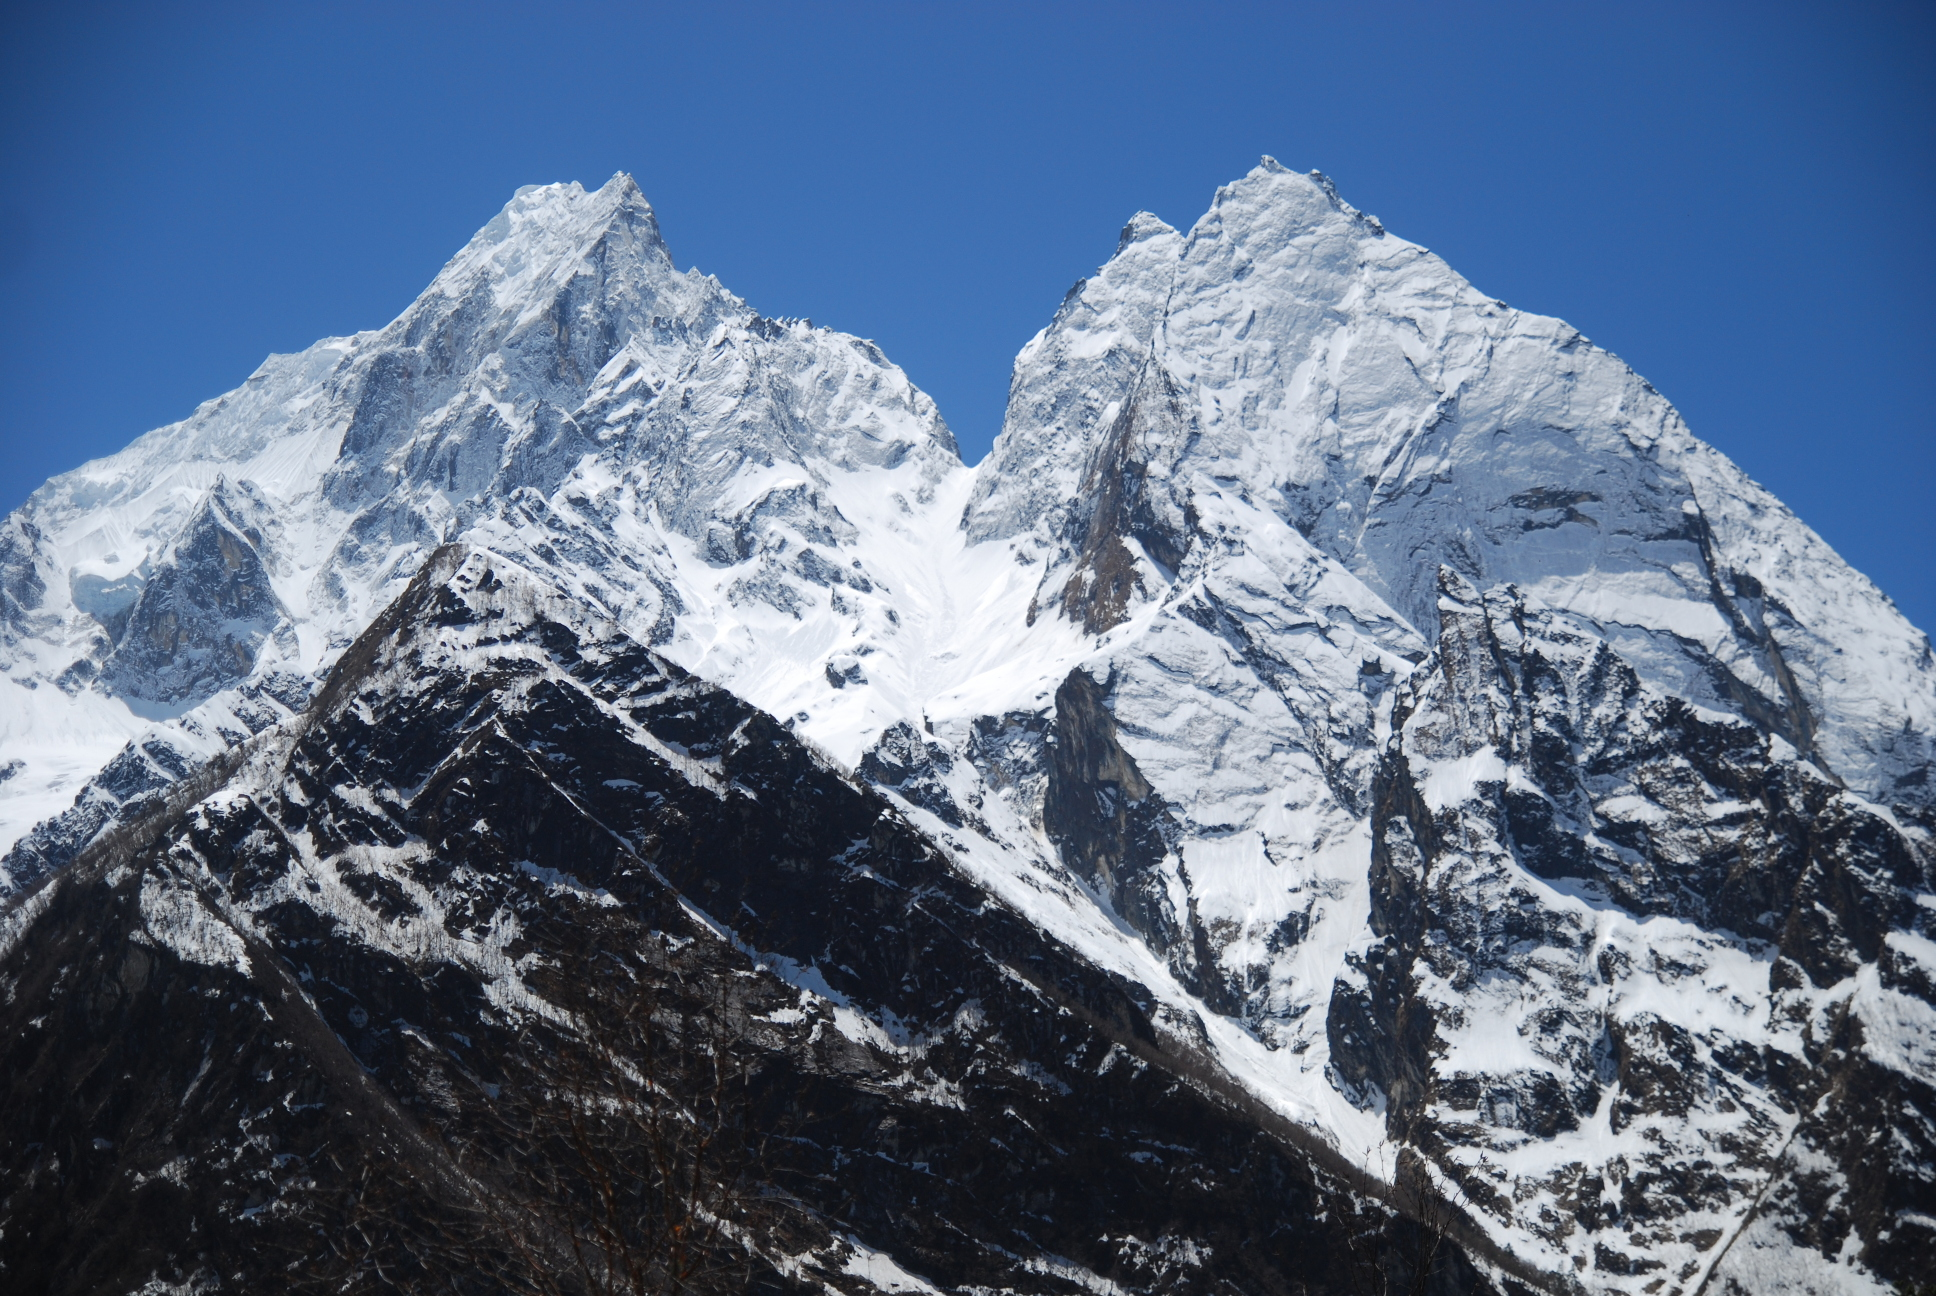 Manaslu_Mountains6_AANepal.JPG